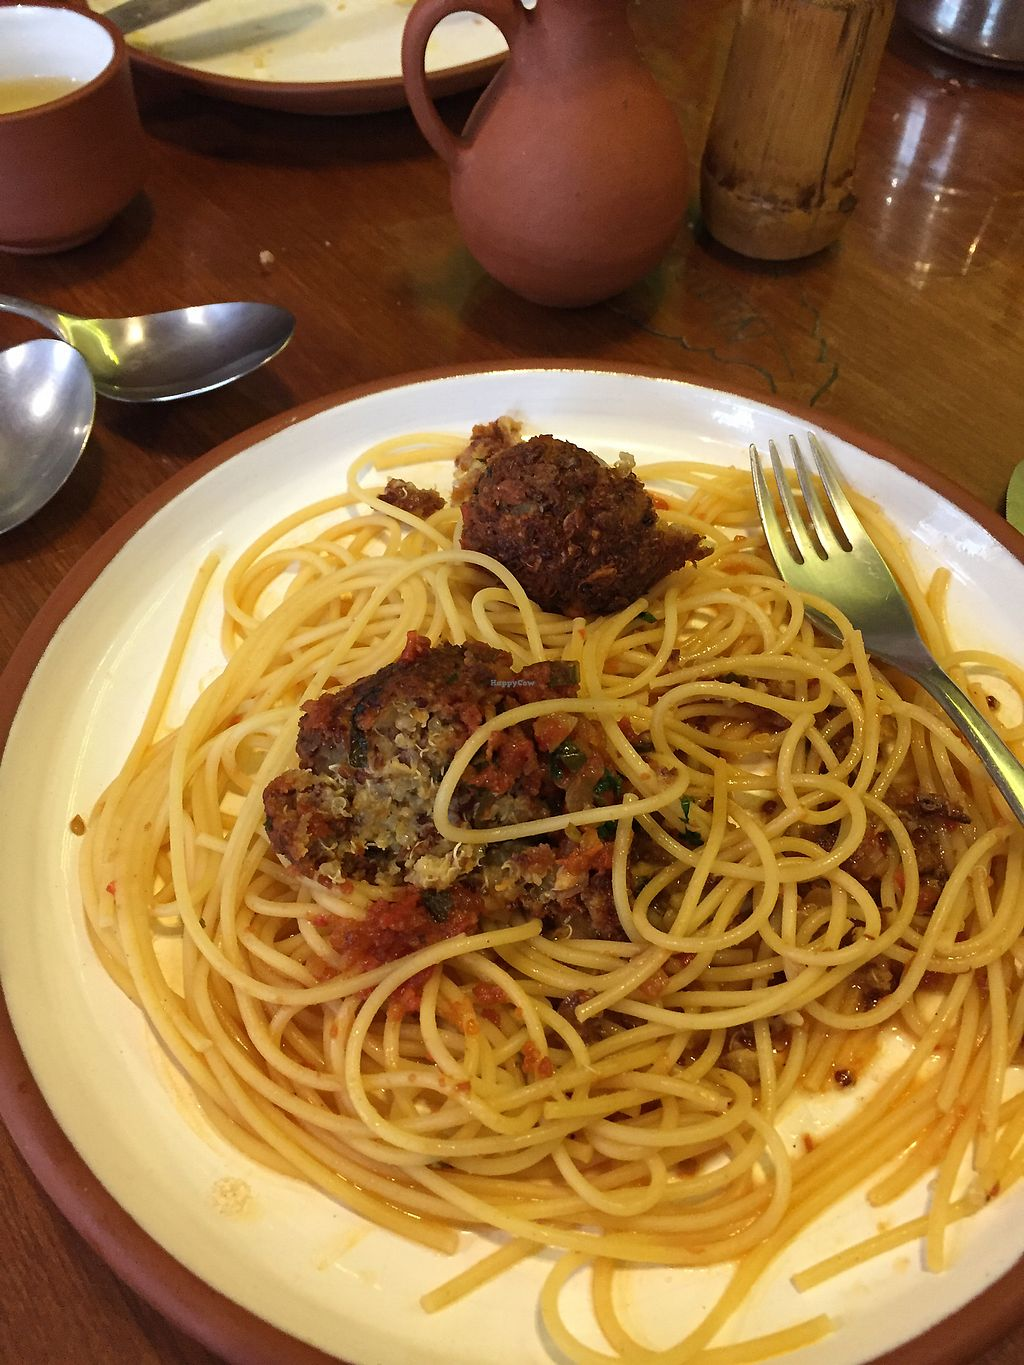 "Photo of Namas Te  by <a href=""/members/profile/Dianebg"">Dianebg</a> <br/>Spaghetti with quinoa balls  <br/> September 22, 2017  - <a href='/contact/abuse/image/20563/307169'>Report</a>"